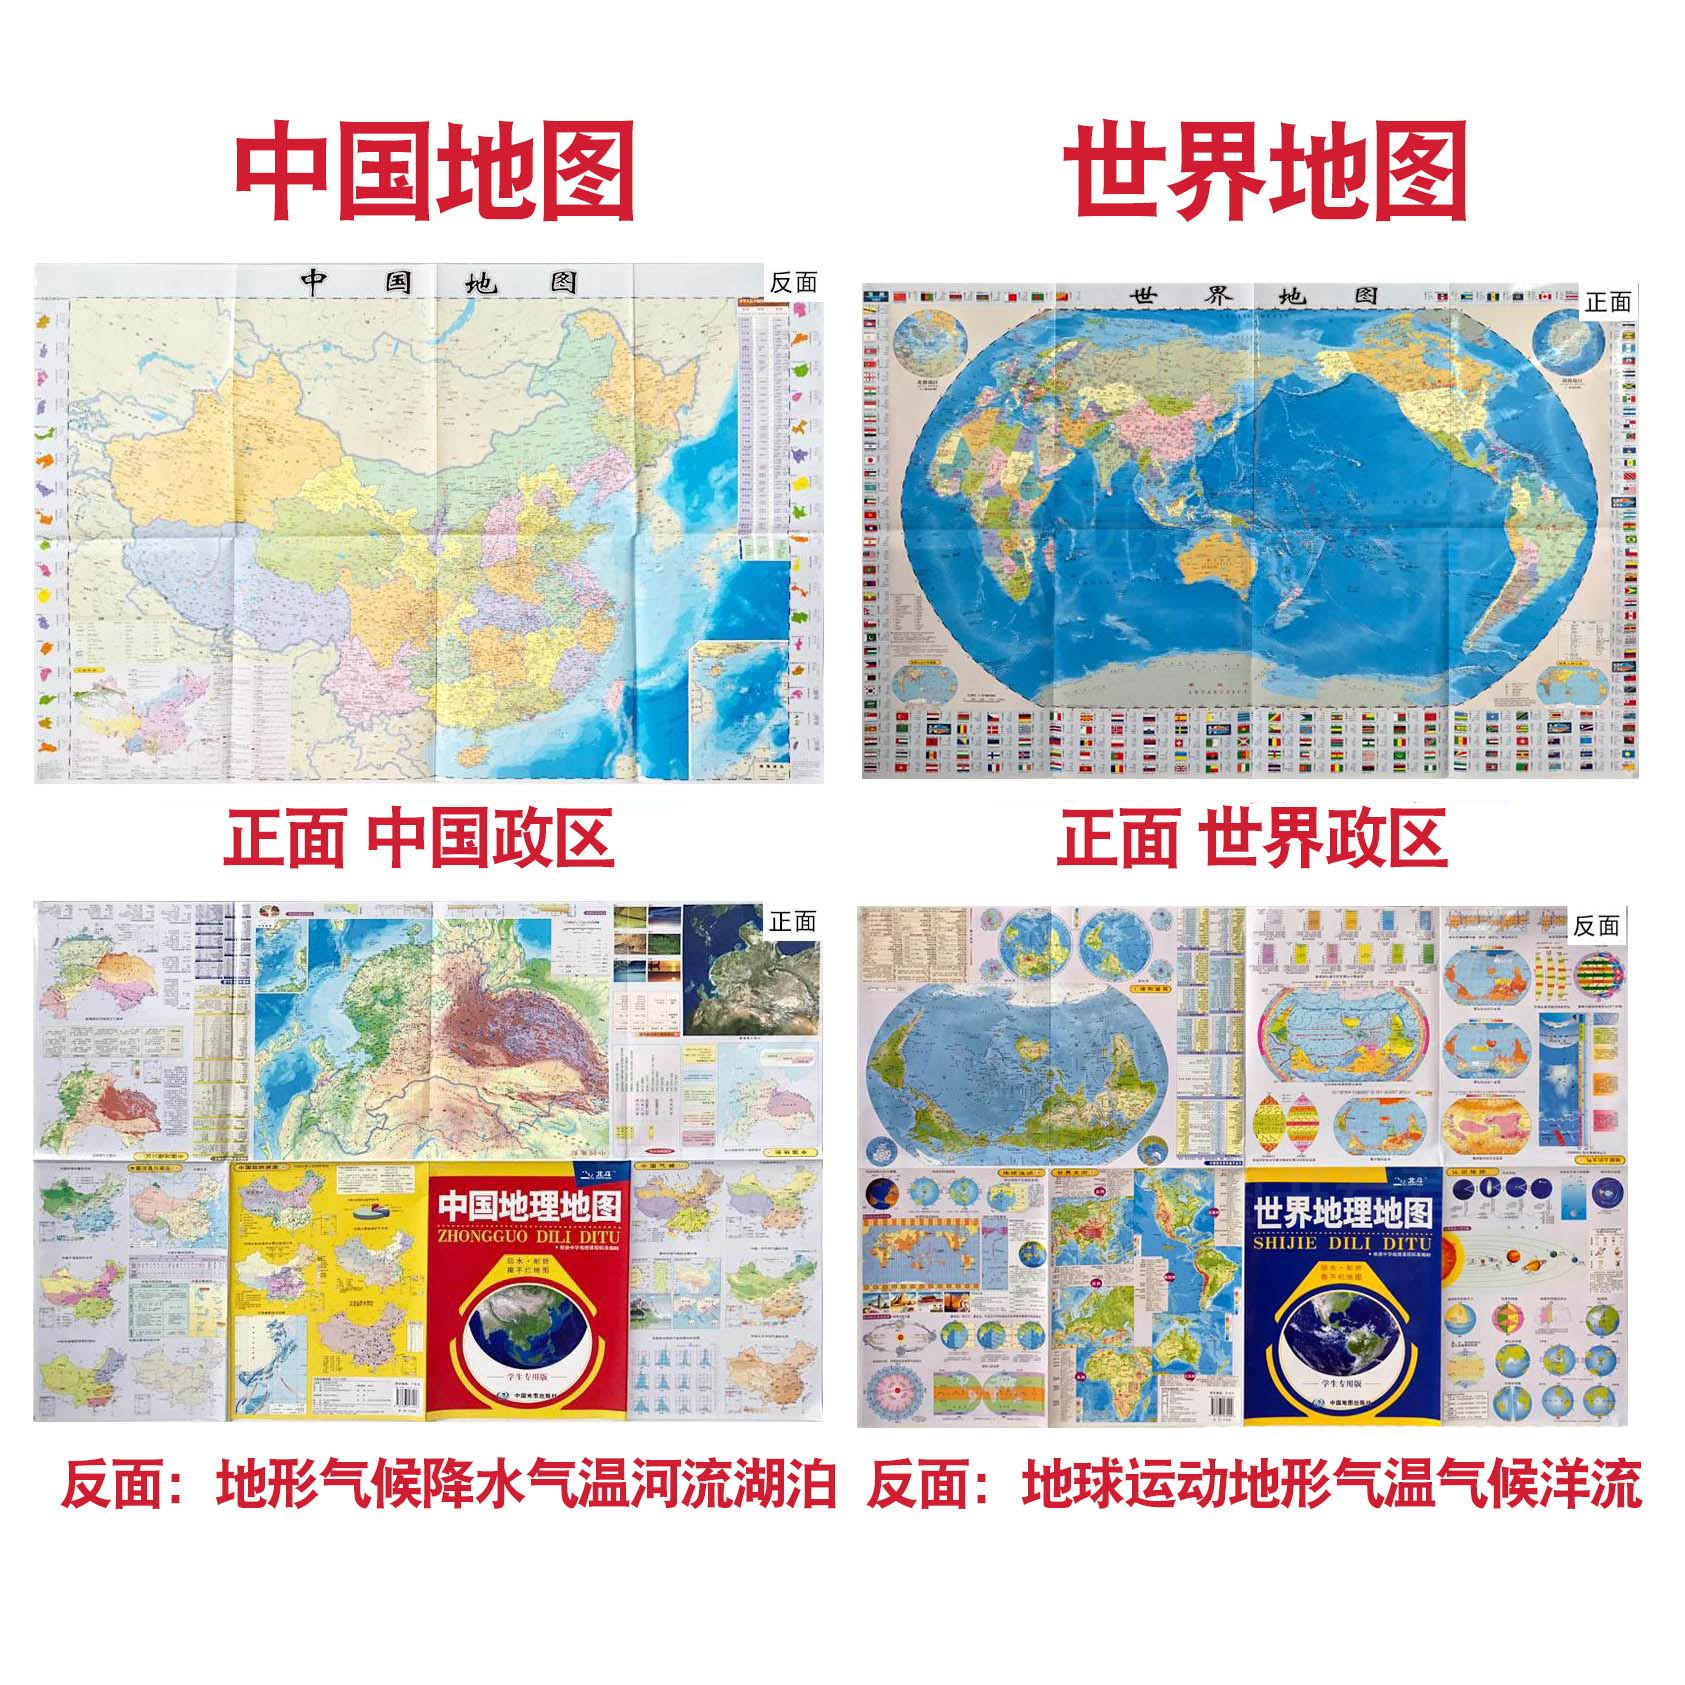 Chinese Geography 2018 New World Geography Map Chinese Geography Map Student Special Edition Full 2 Sheets 85 60 Cm Waterproof Folding Tear Not Rotten Administrative